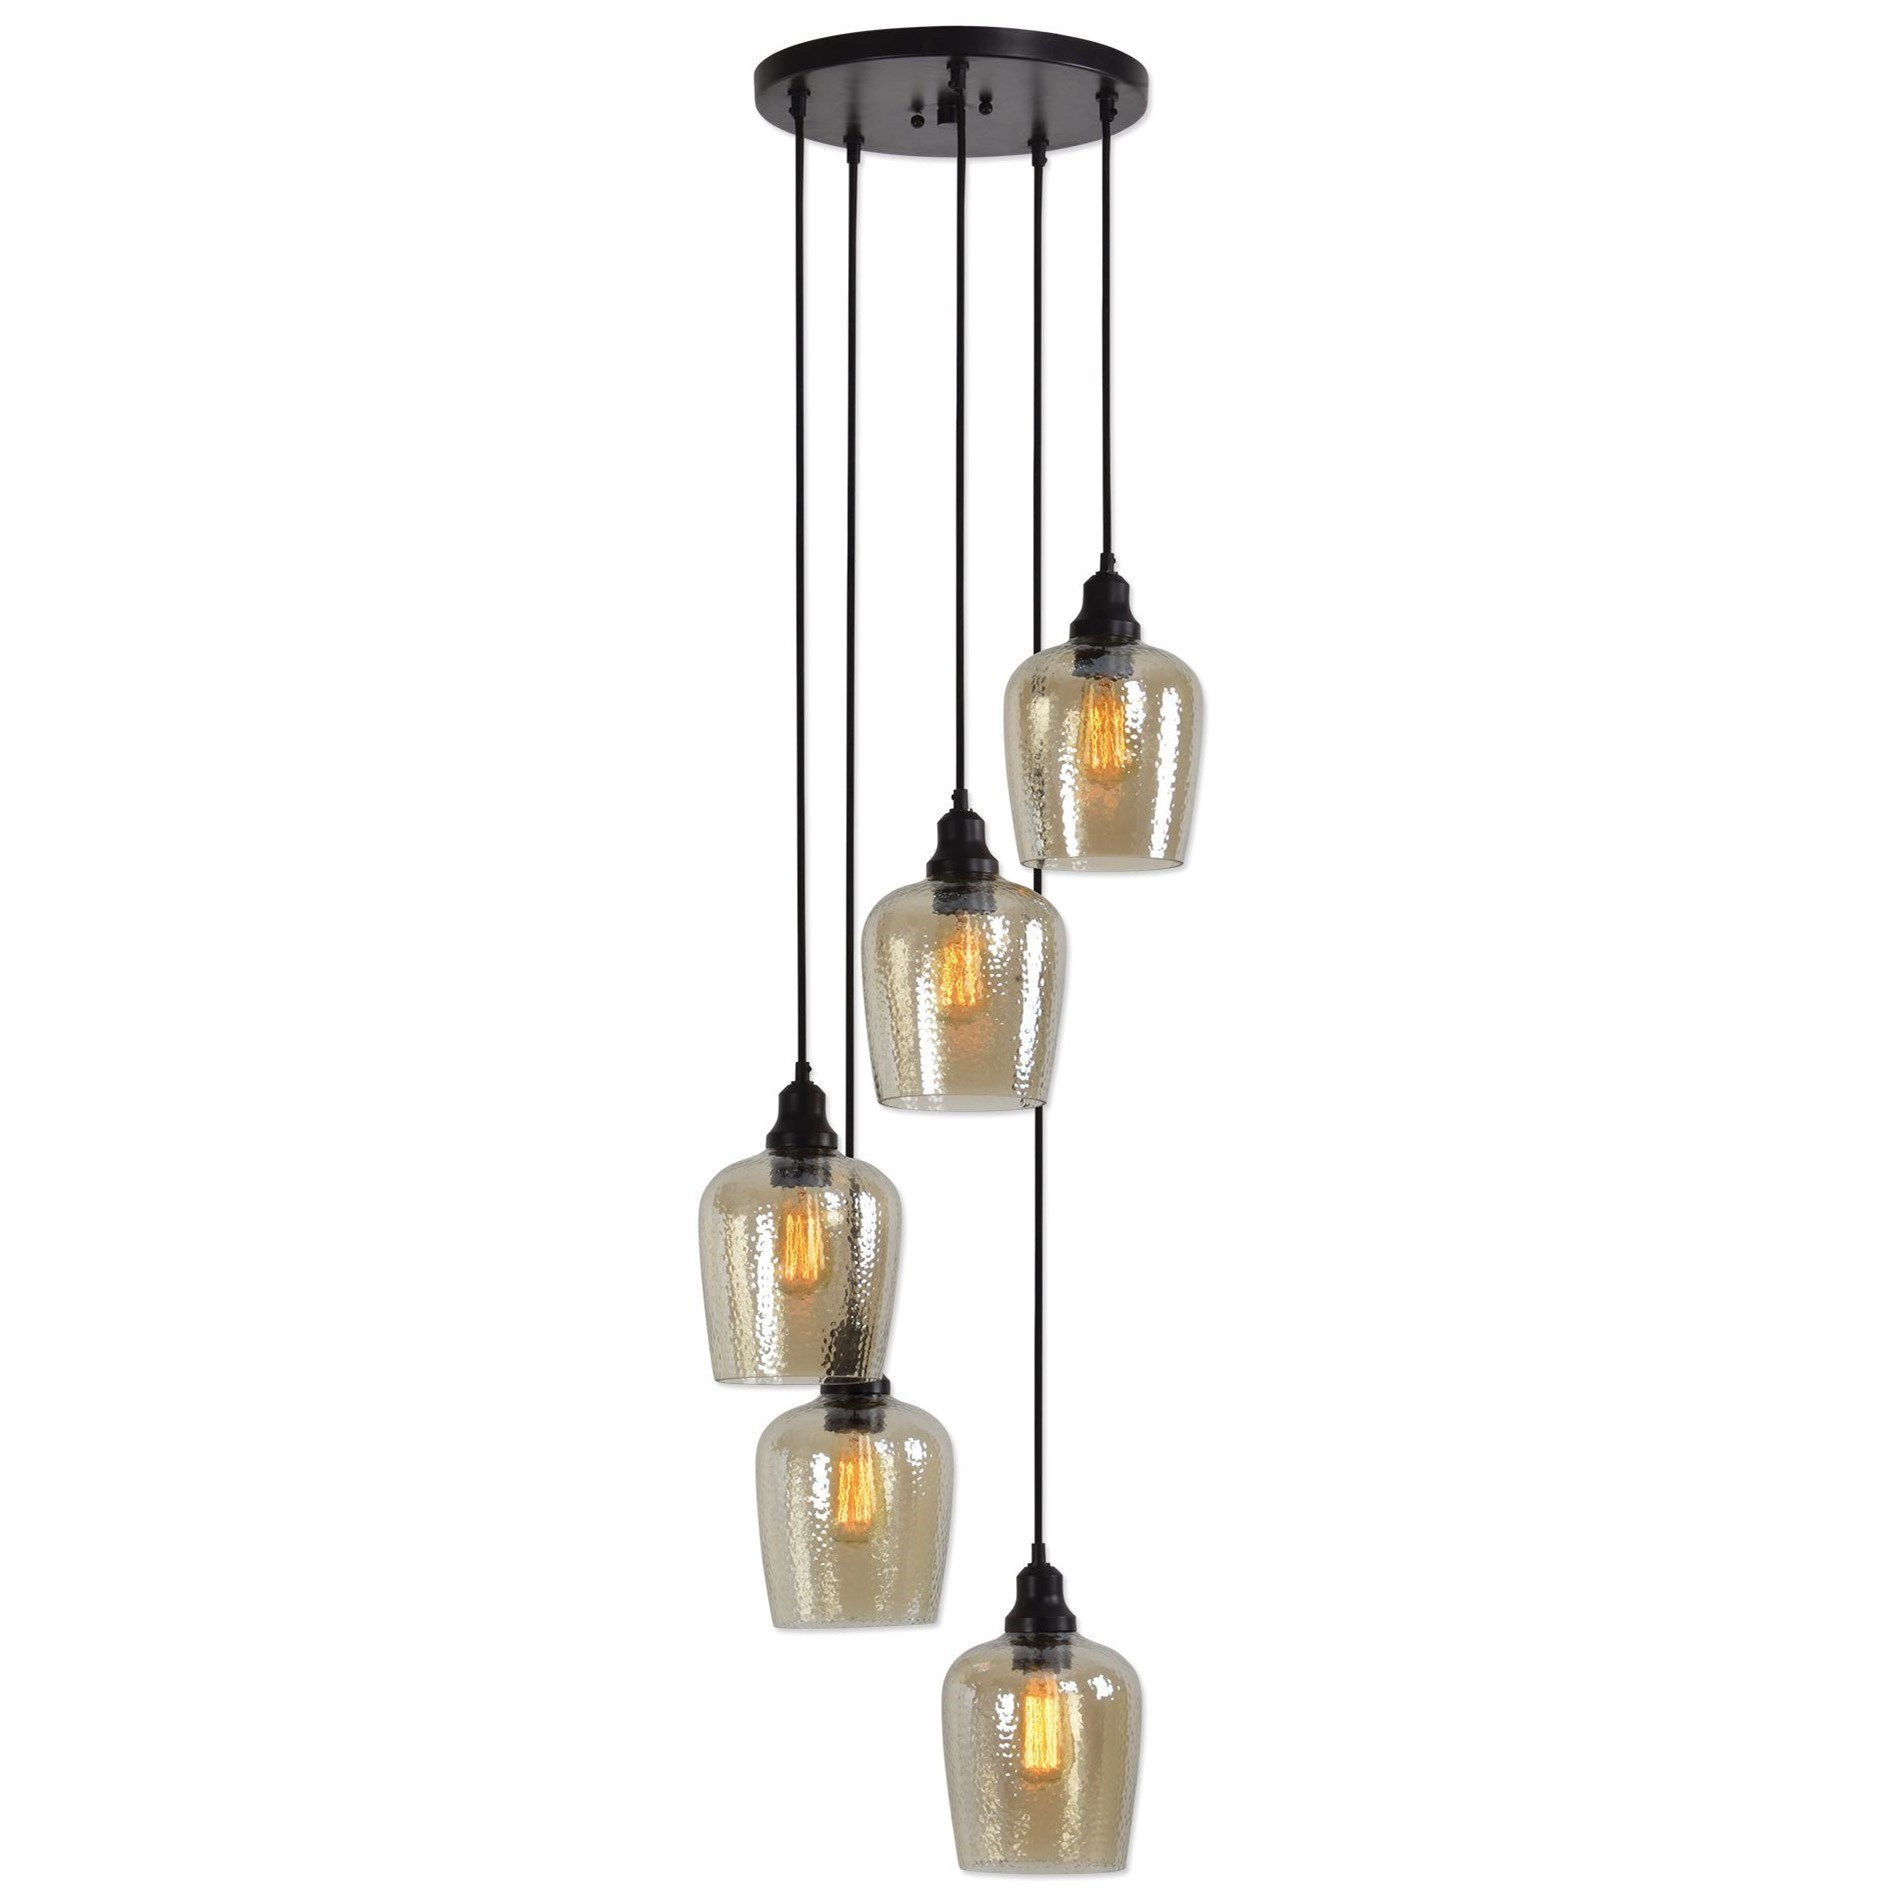 Lighting Fixtures Lighting Fixtures Pendant Lights Aarush 5 Light Glass Cluster Pendant By Uttermost At Hudson S Furniture